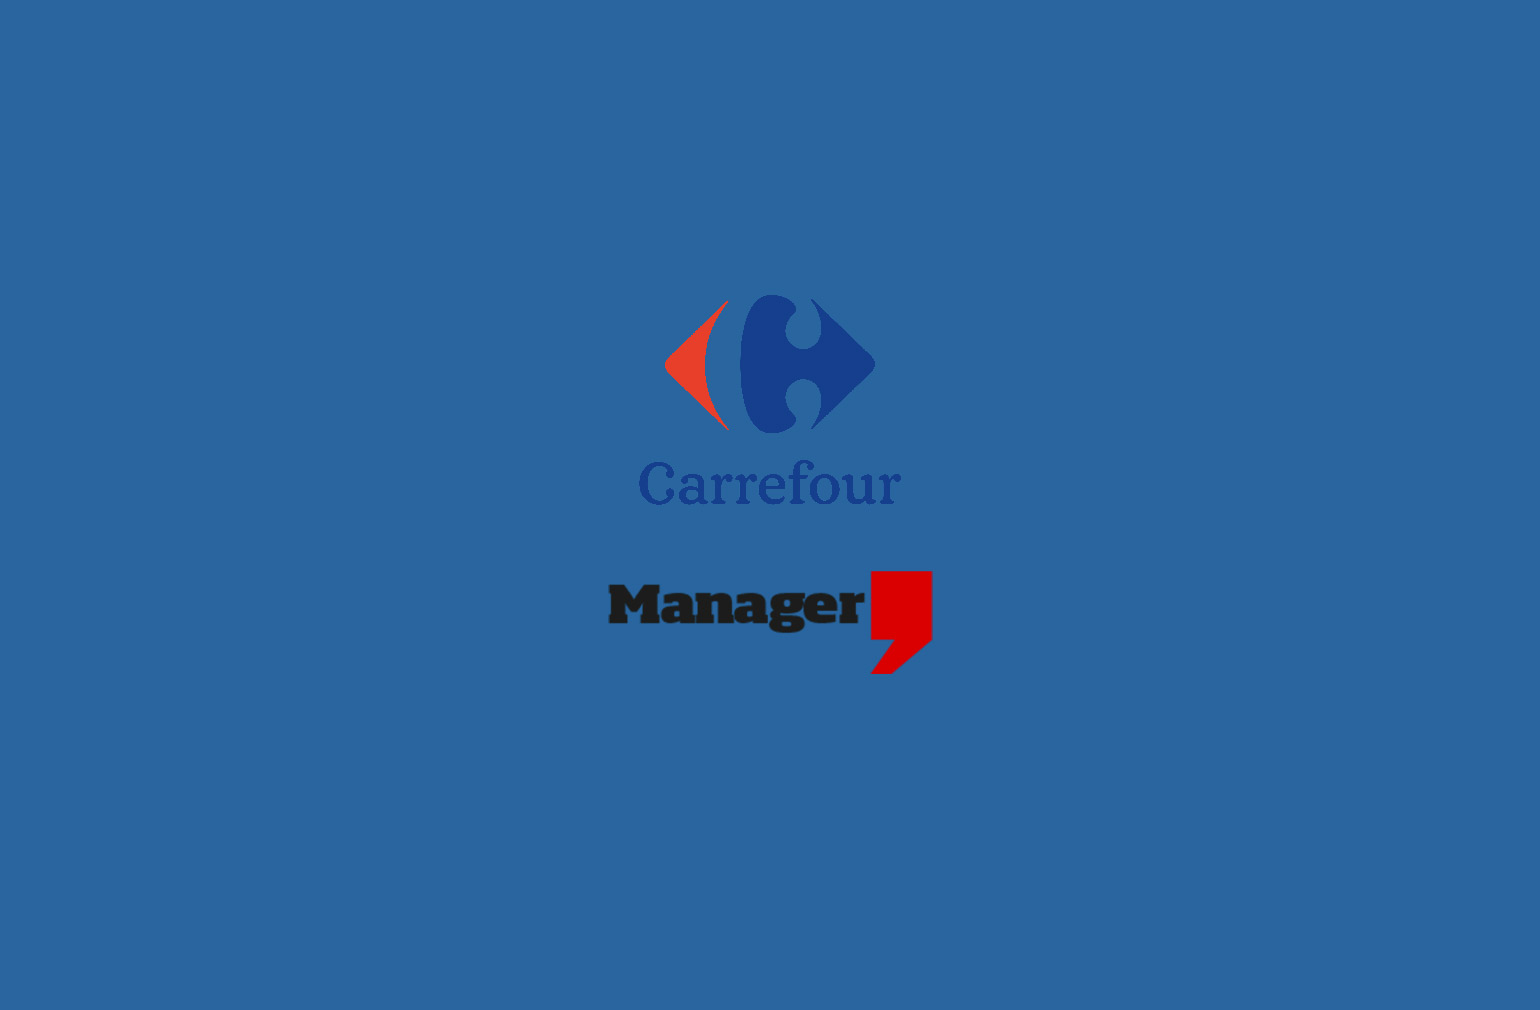 Carrefour Manager Logo